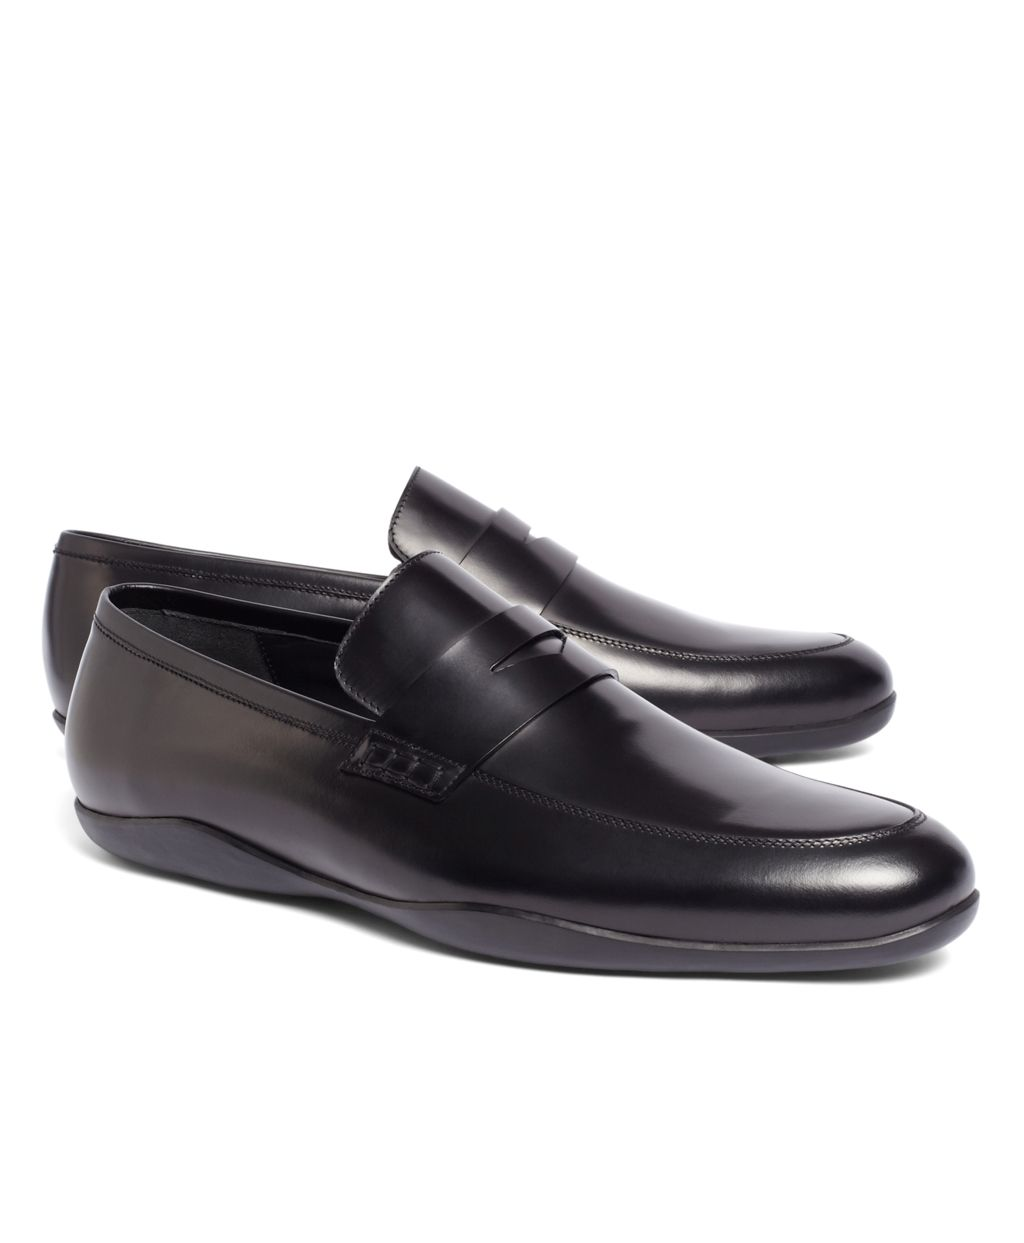 b275962a4db Harrys of London Downing Gloss Loafers